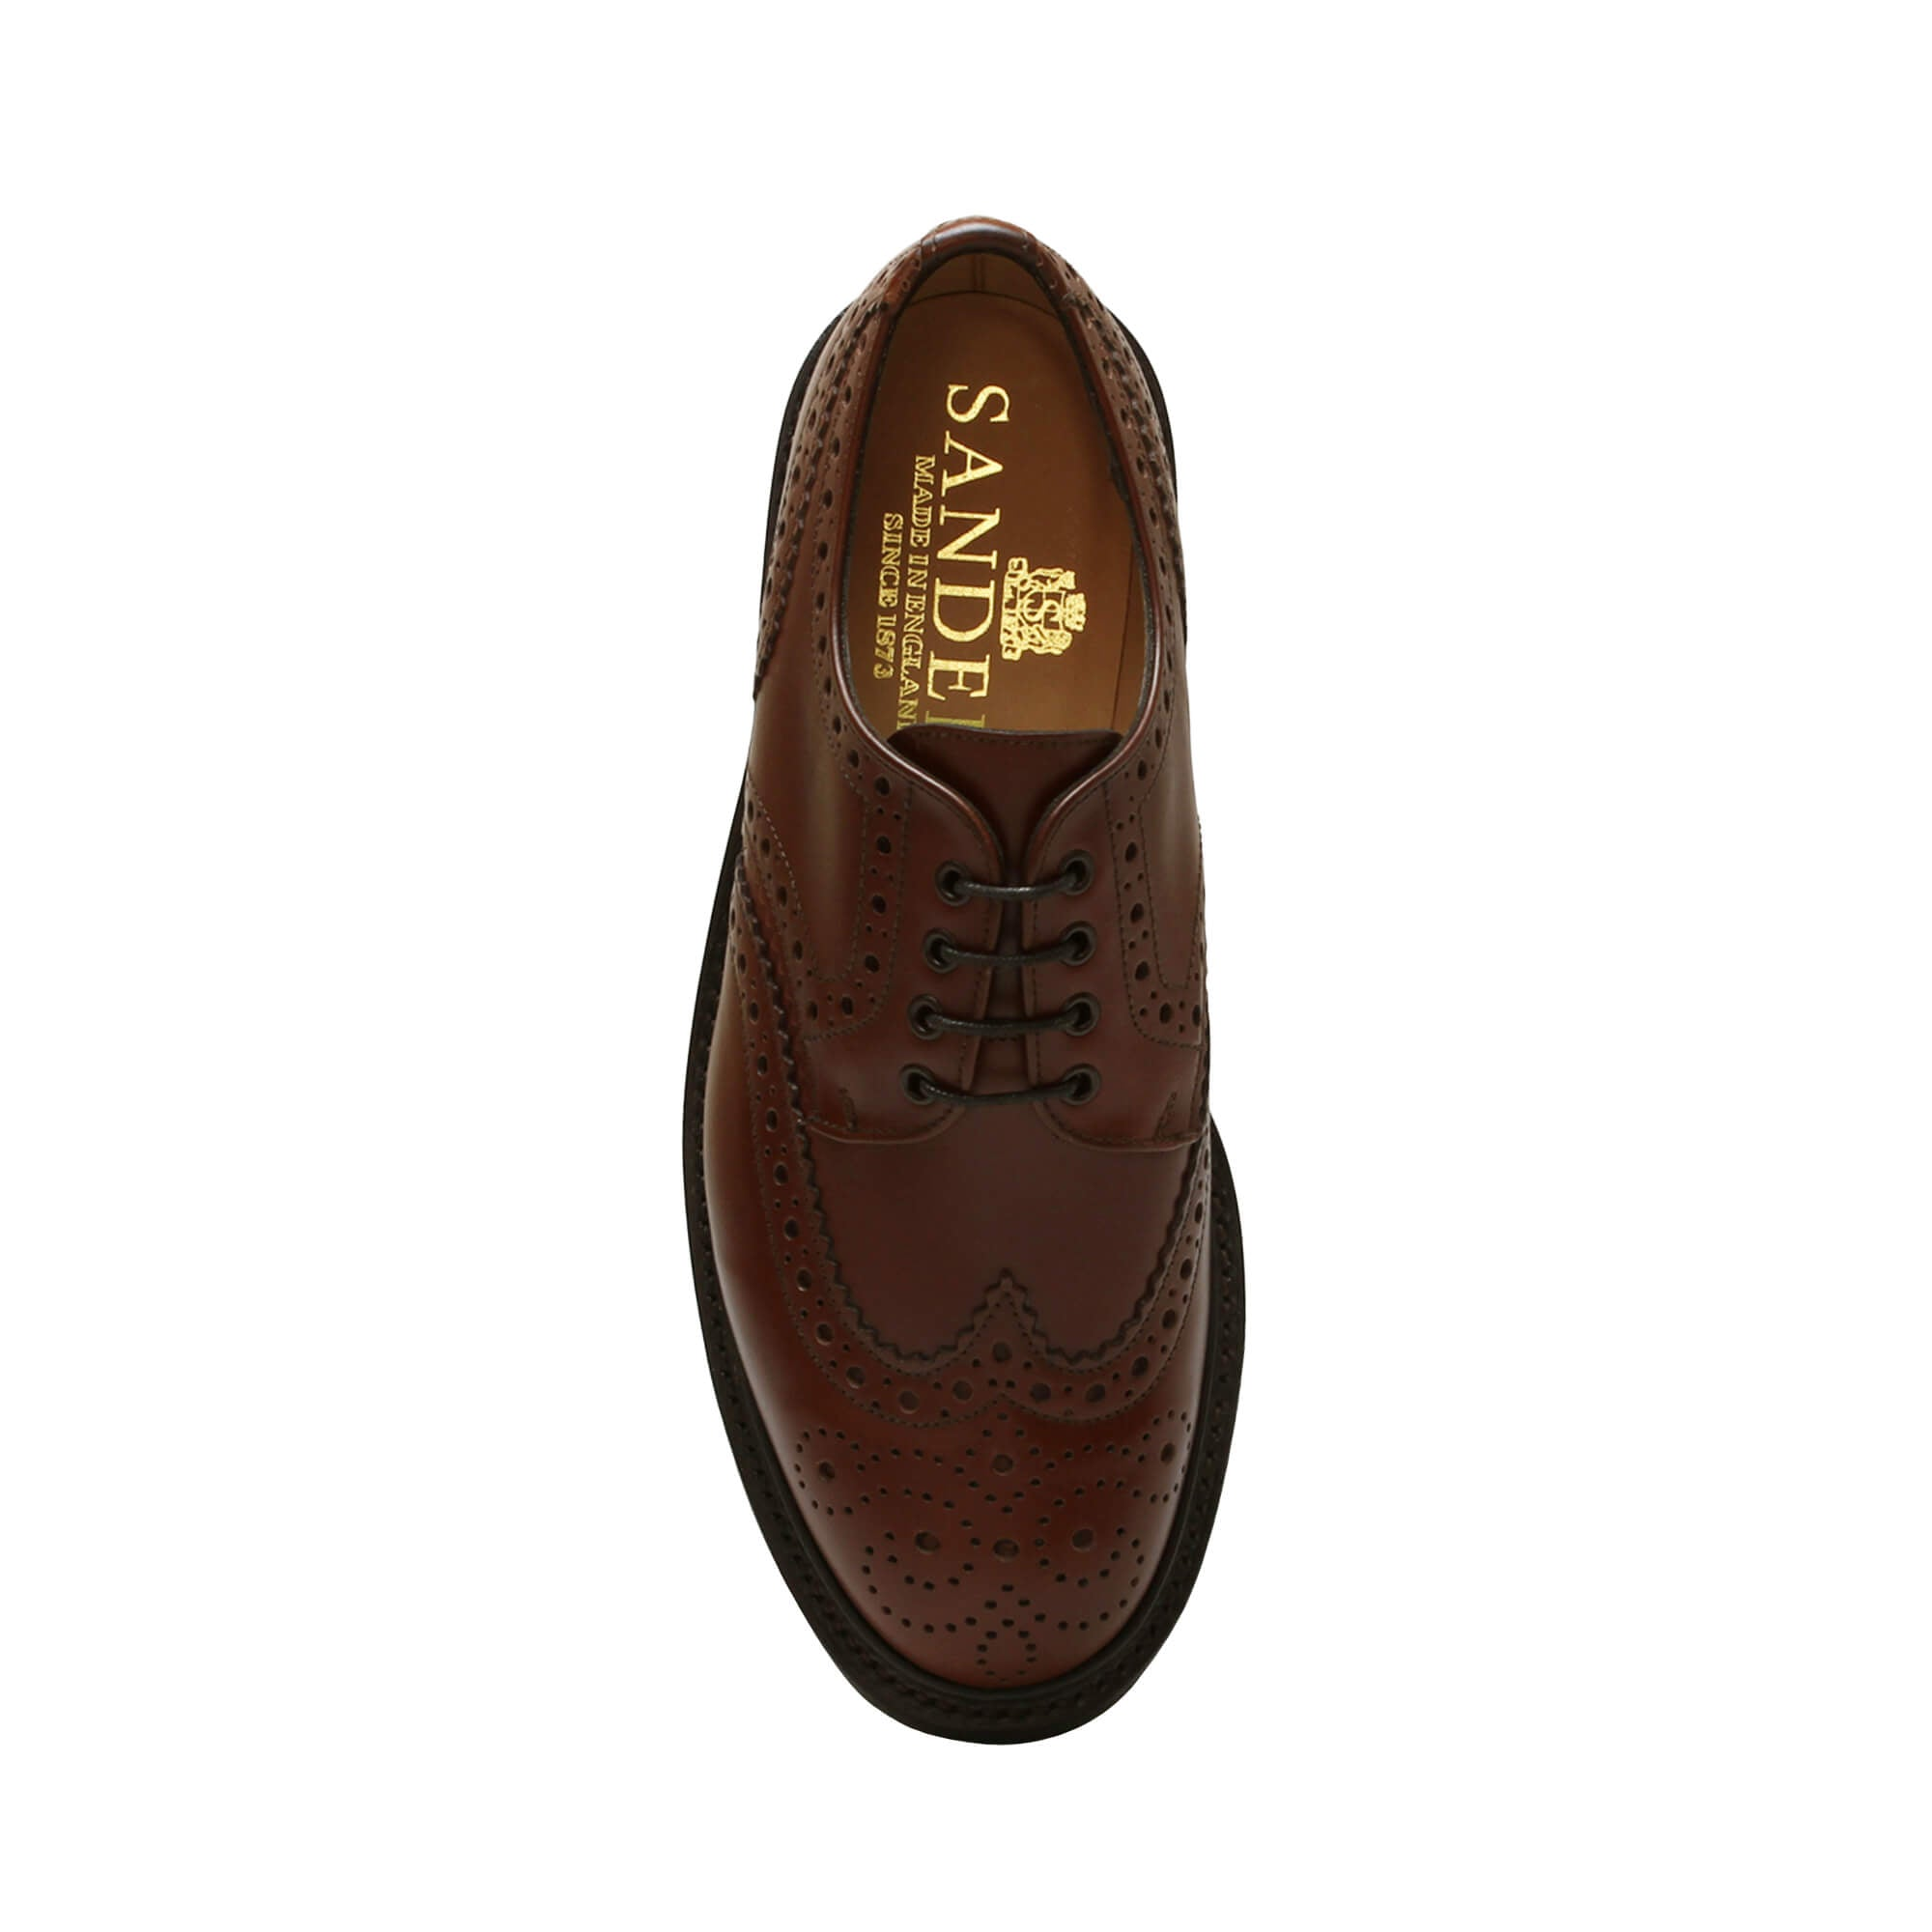 Sanders Men's Salisbury Leather Brogue Shoes 6688/T